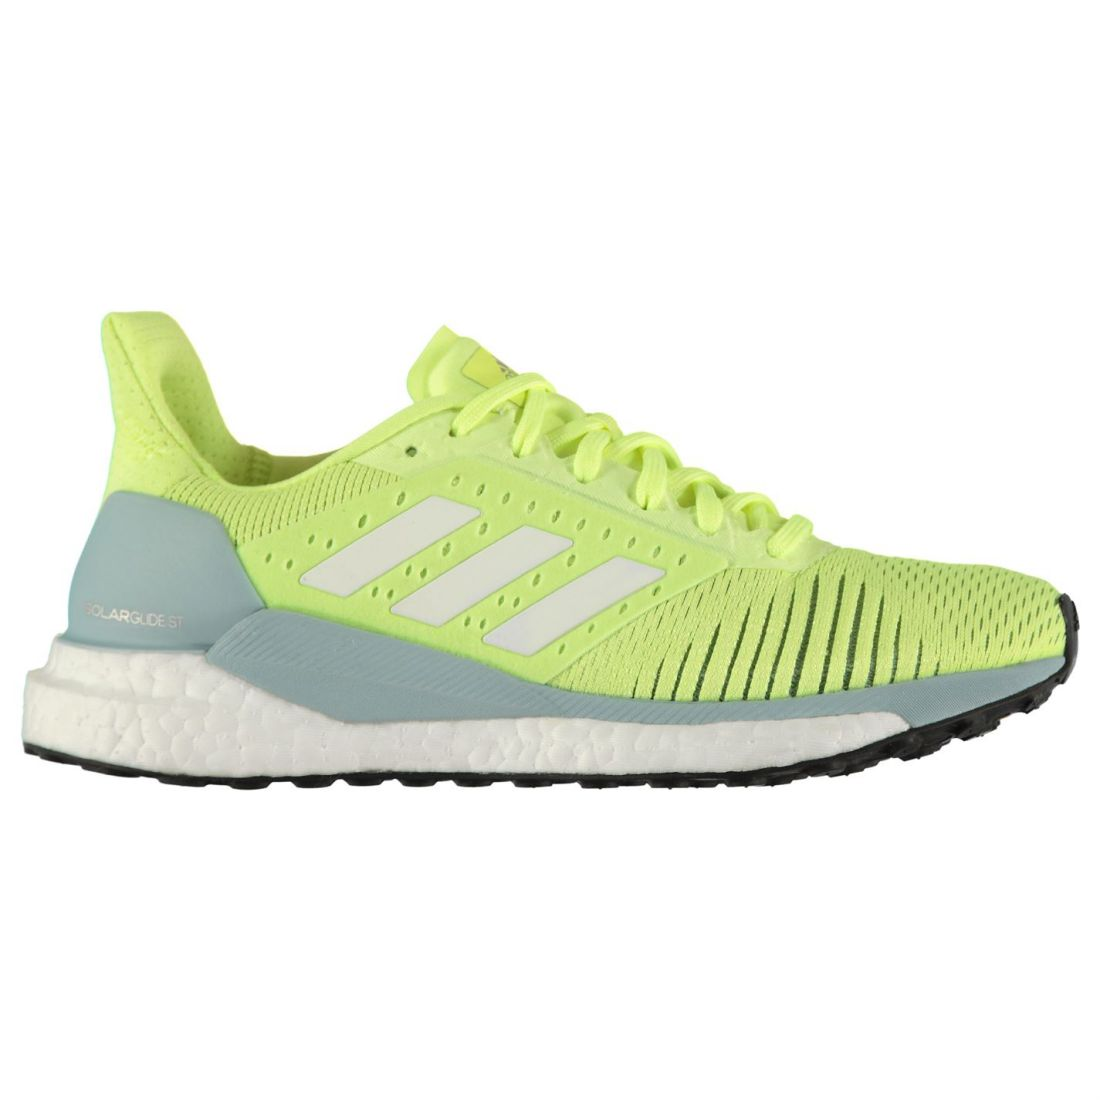 26f1069605bc9a adidas SolarGlide ST Road Running Shoes Mens